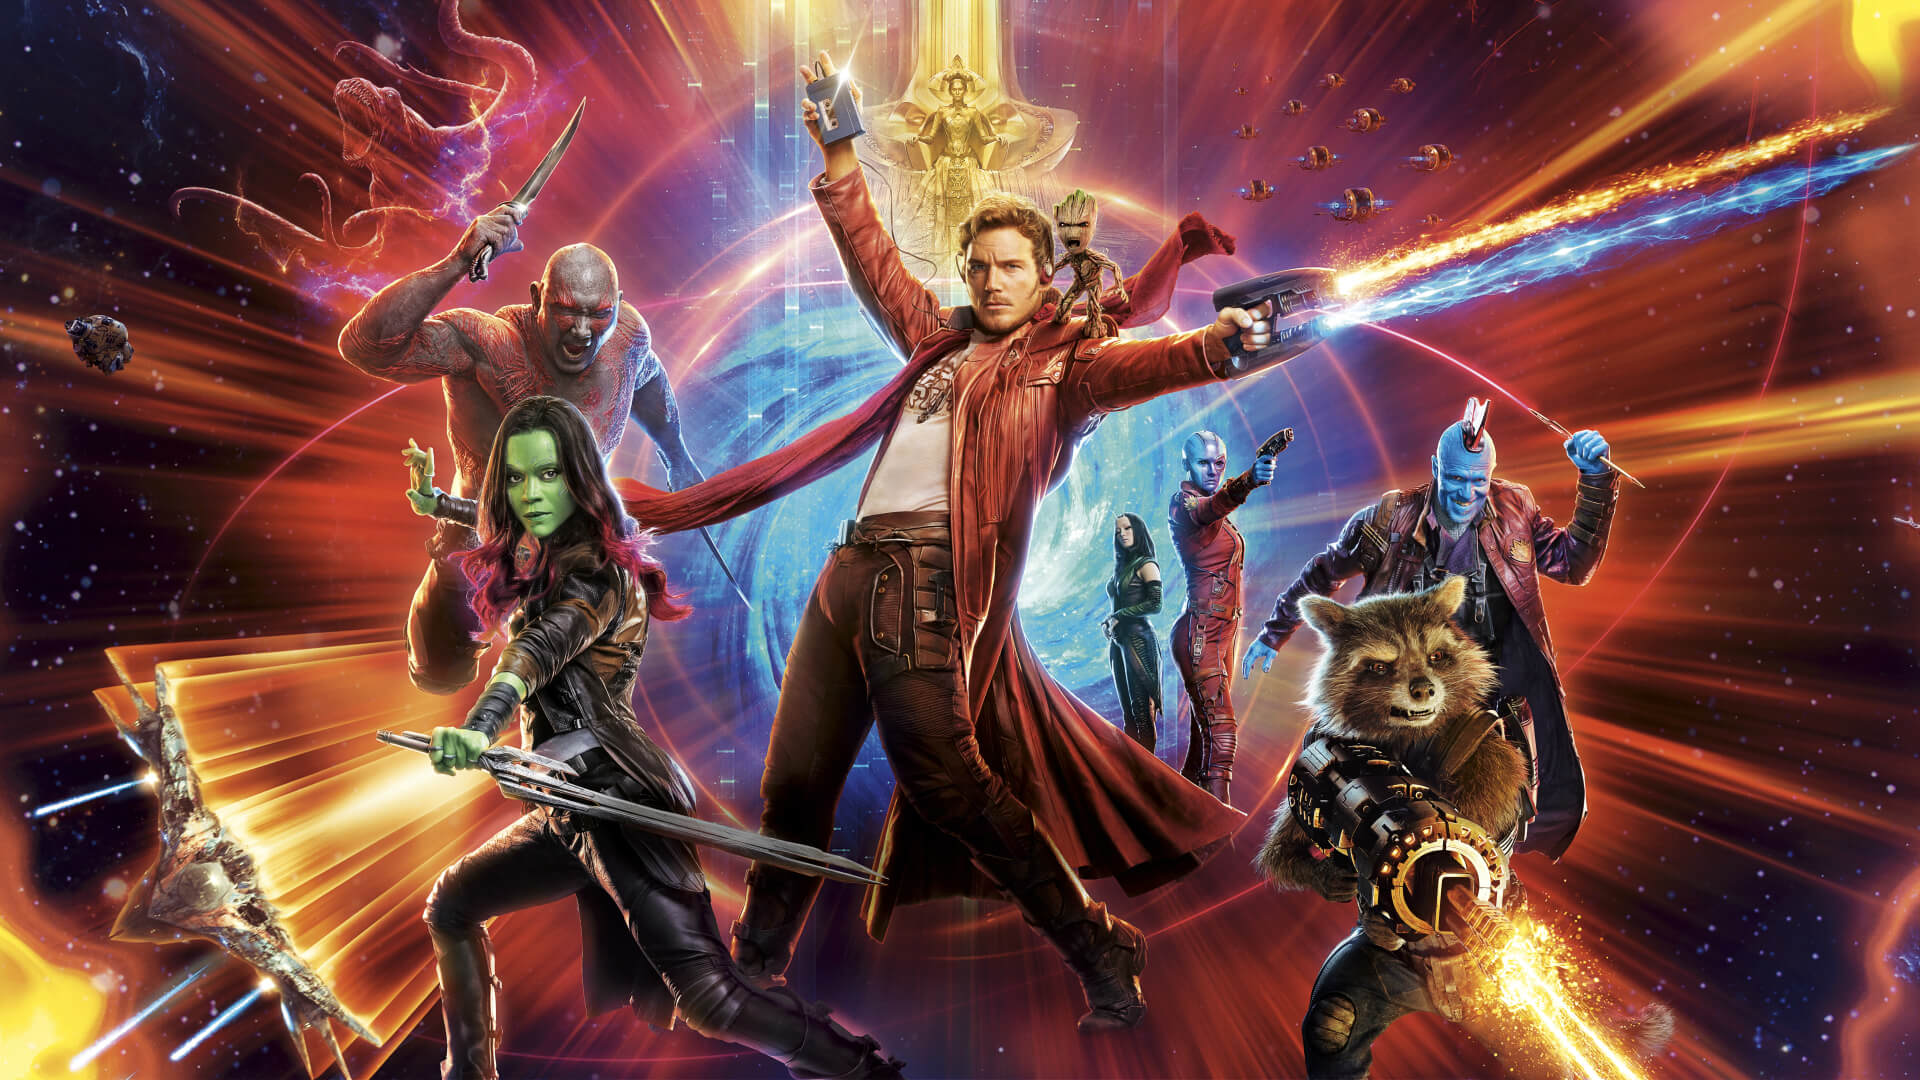 Guardians of the Galaxy Cast Issue Statement Supporting James Gunn